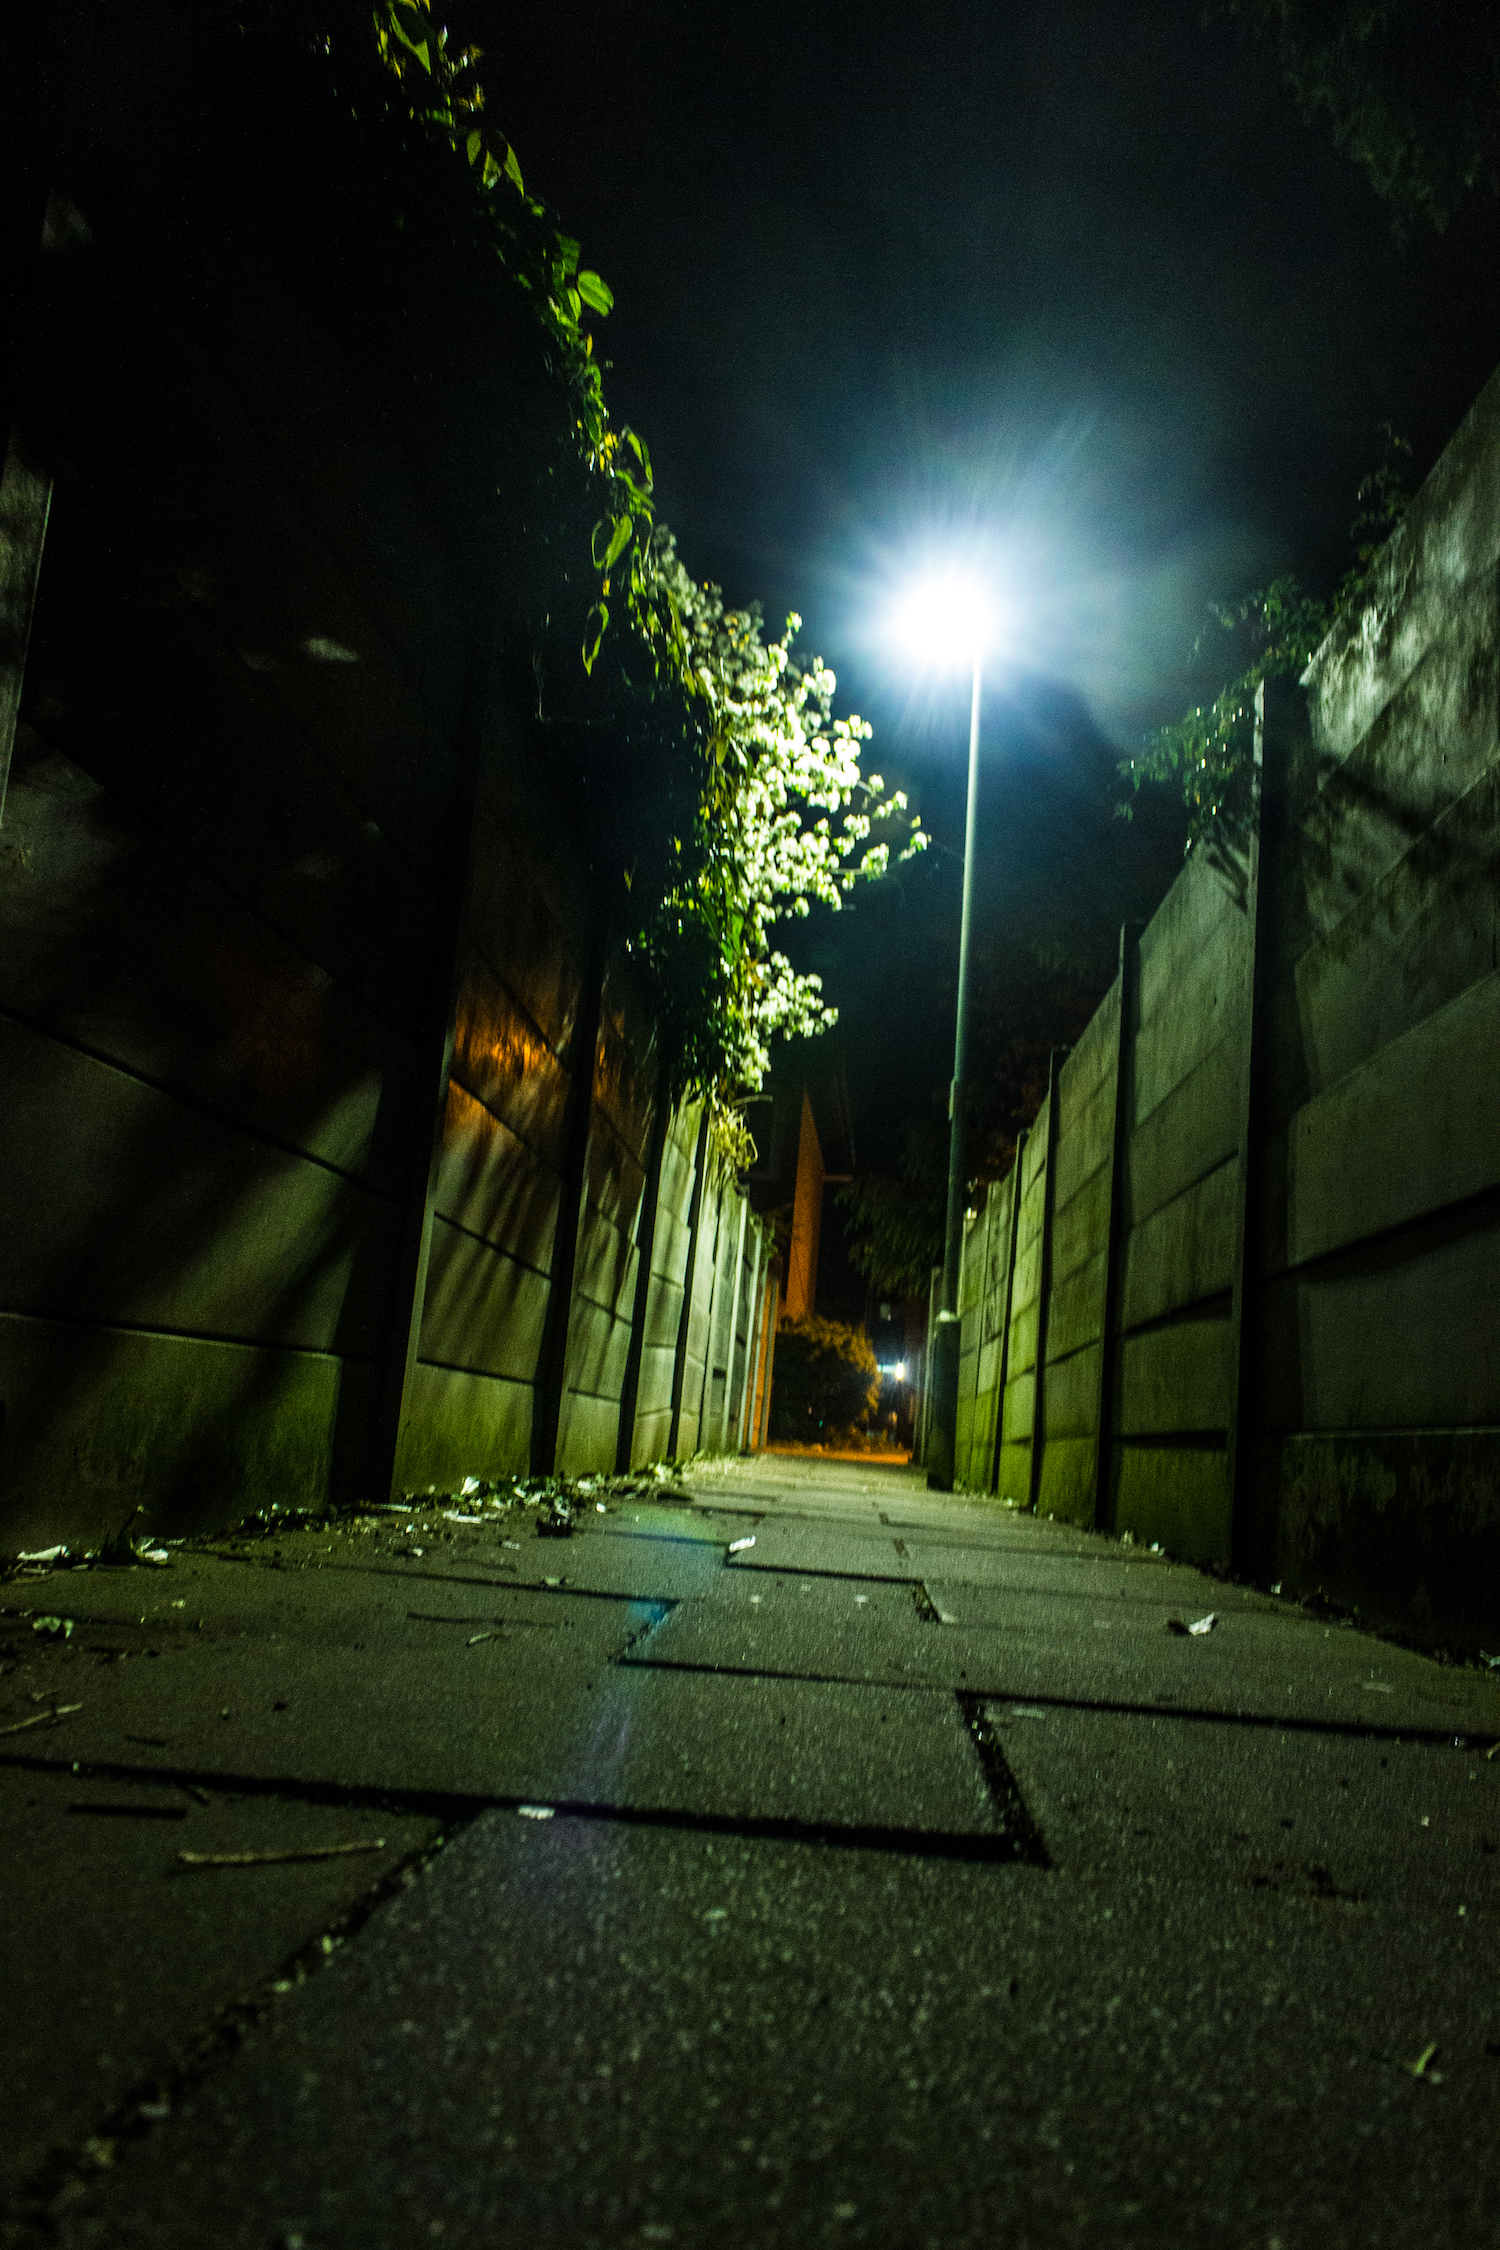 Professional Photography Gritty Alley With Concrete In Ilford North East London.